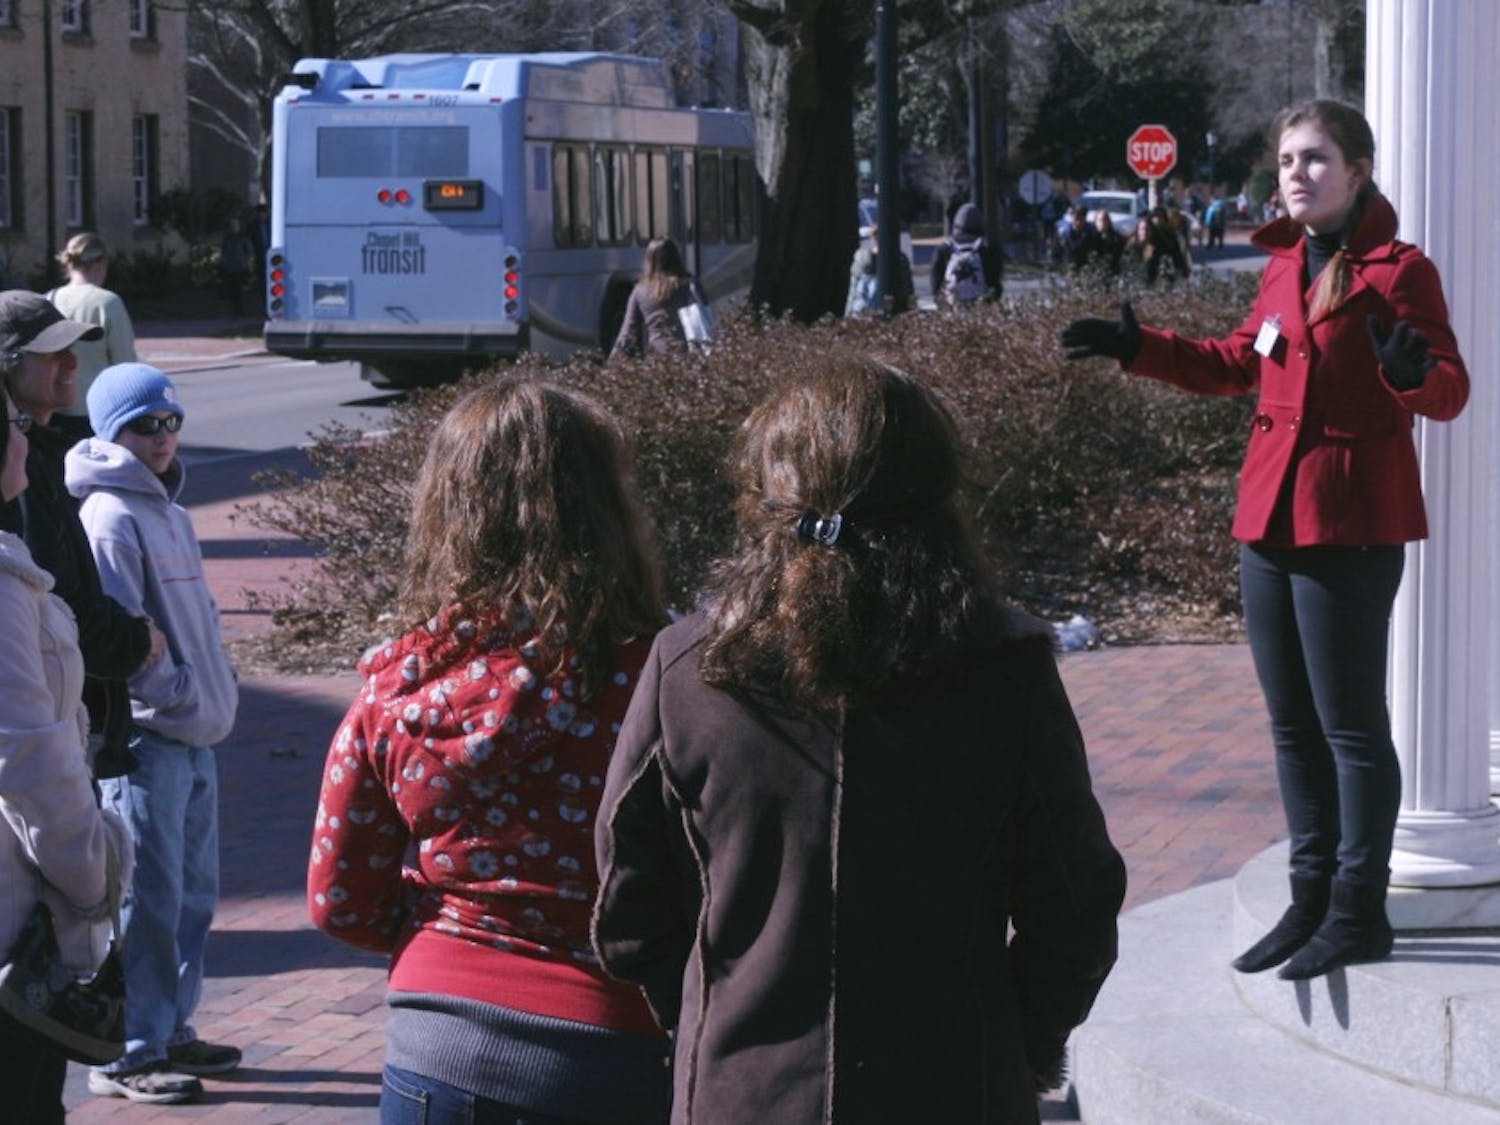 UNC student Ellen Porter leads a tour of the campus for prospective students and their families on Thursday morning.